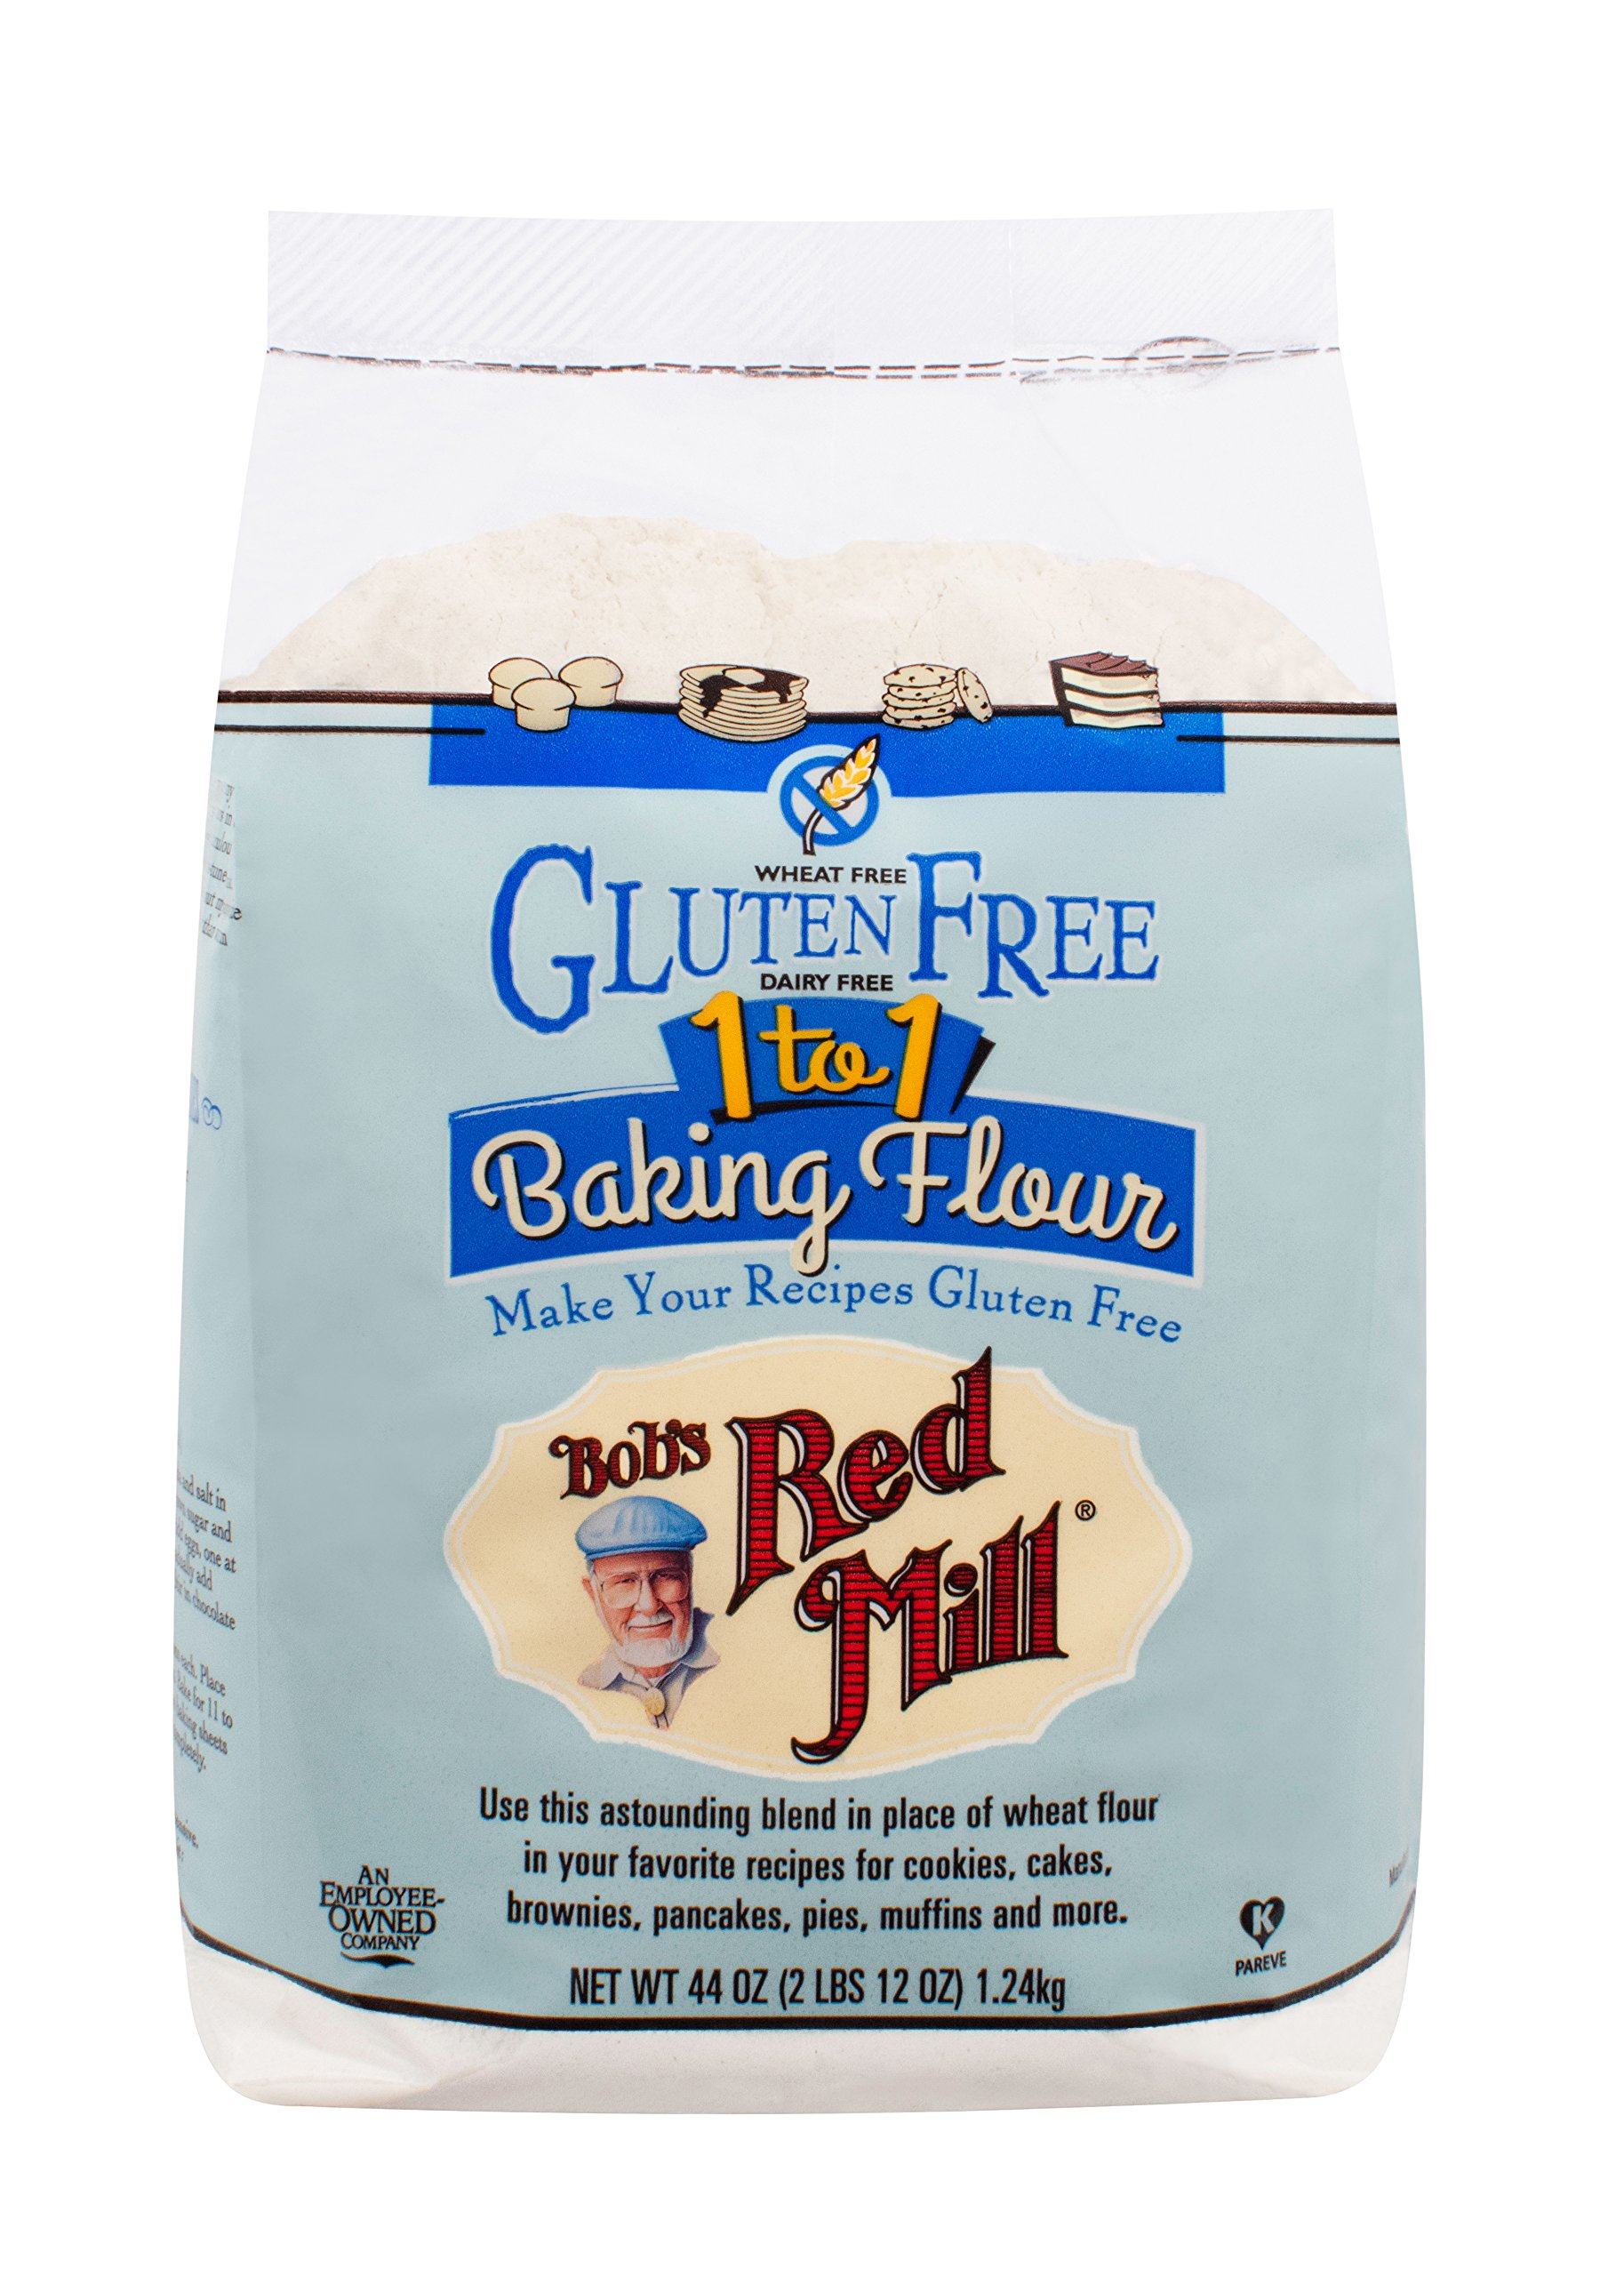 Bob's Red Mill Gluten Free 1 to 1 Baking Flour, 44 Ounce (Pack of 4) by Bob's Red Mill (Image #3)